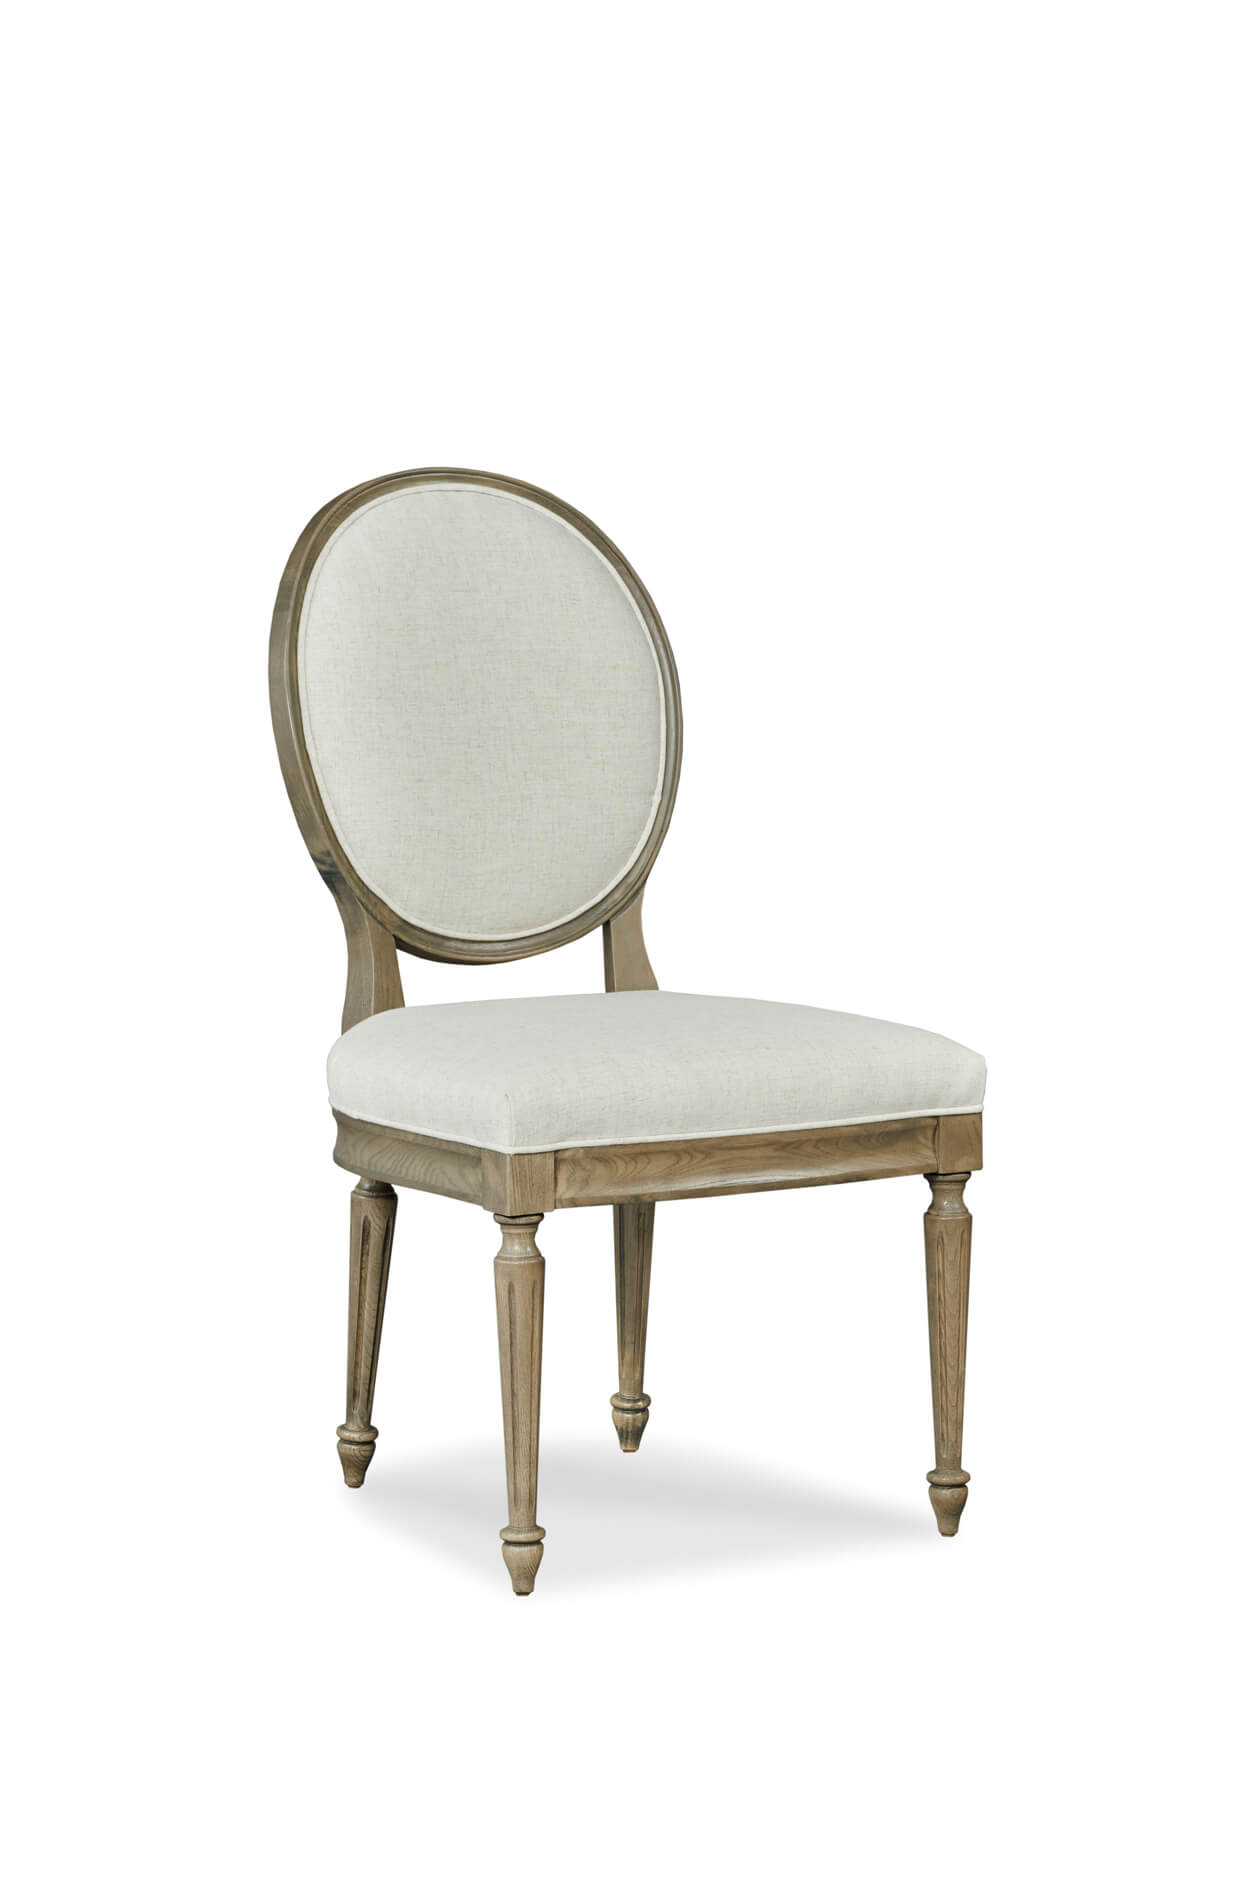 Fairfield's McGee Upholstered Round Back Dining Chair